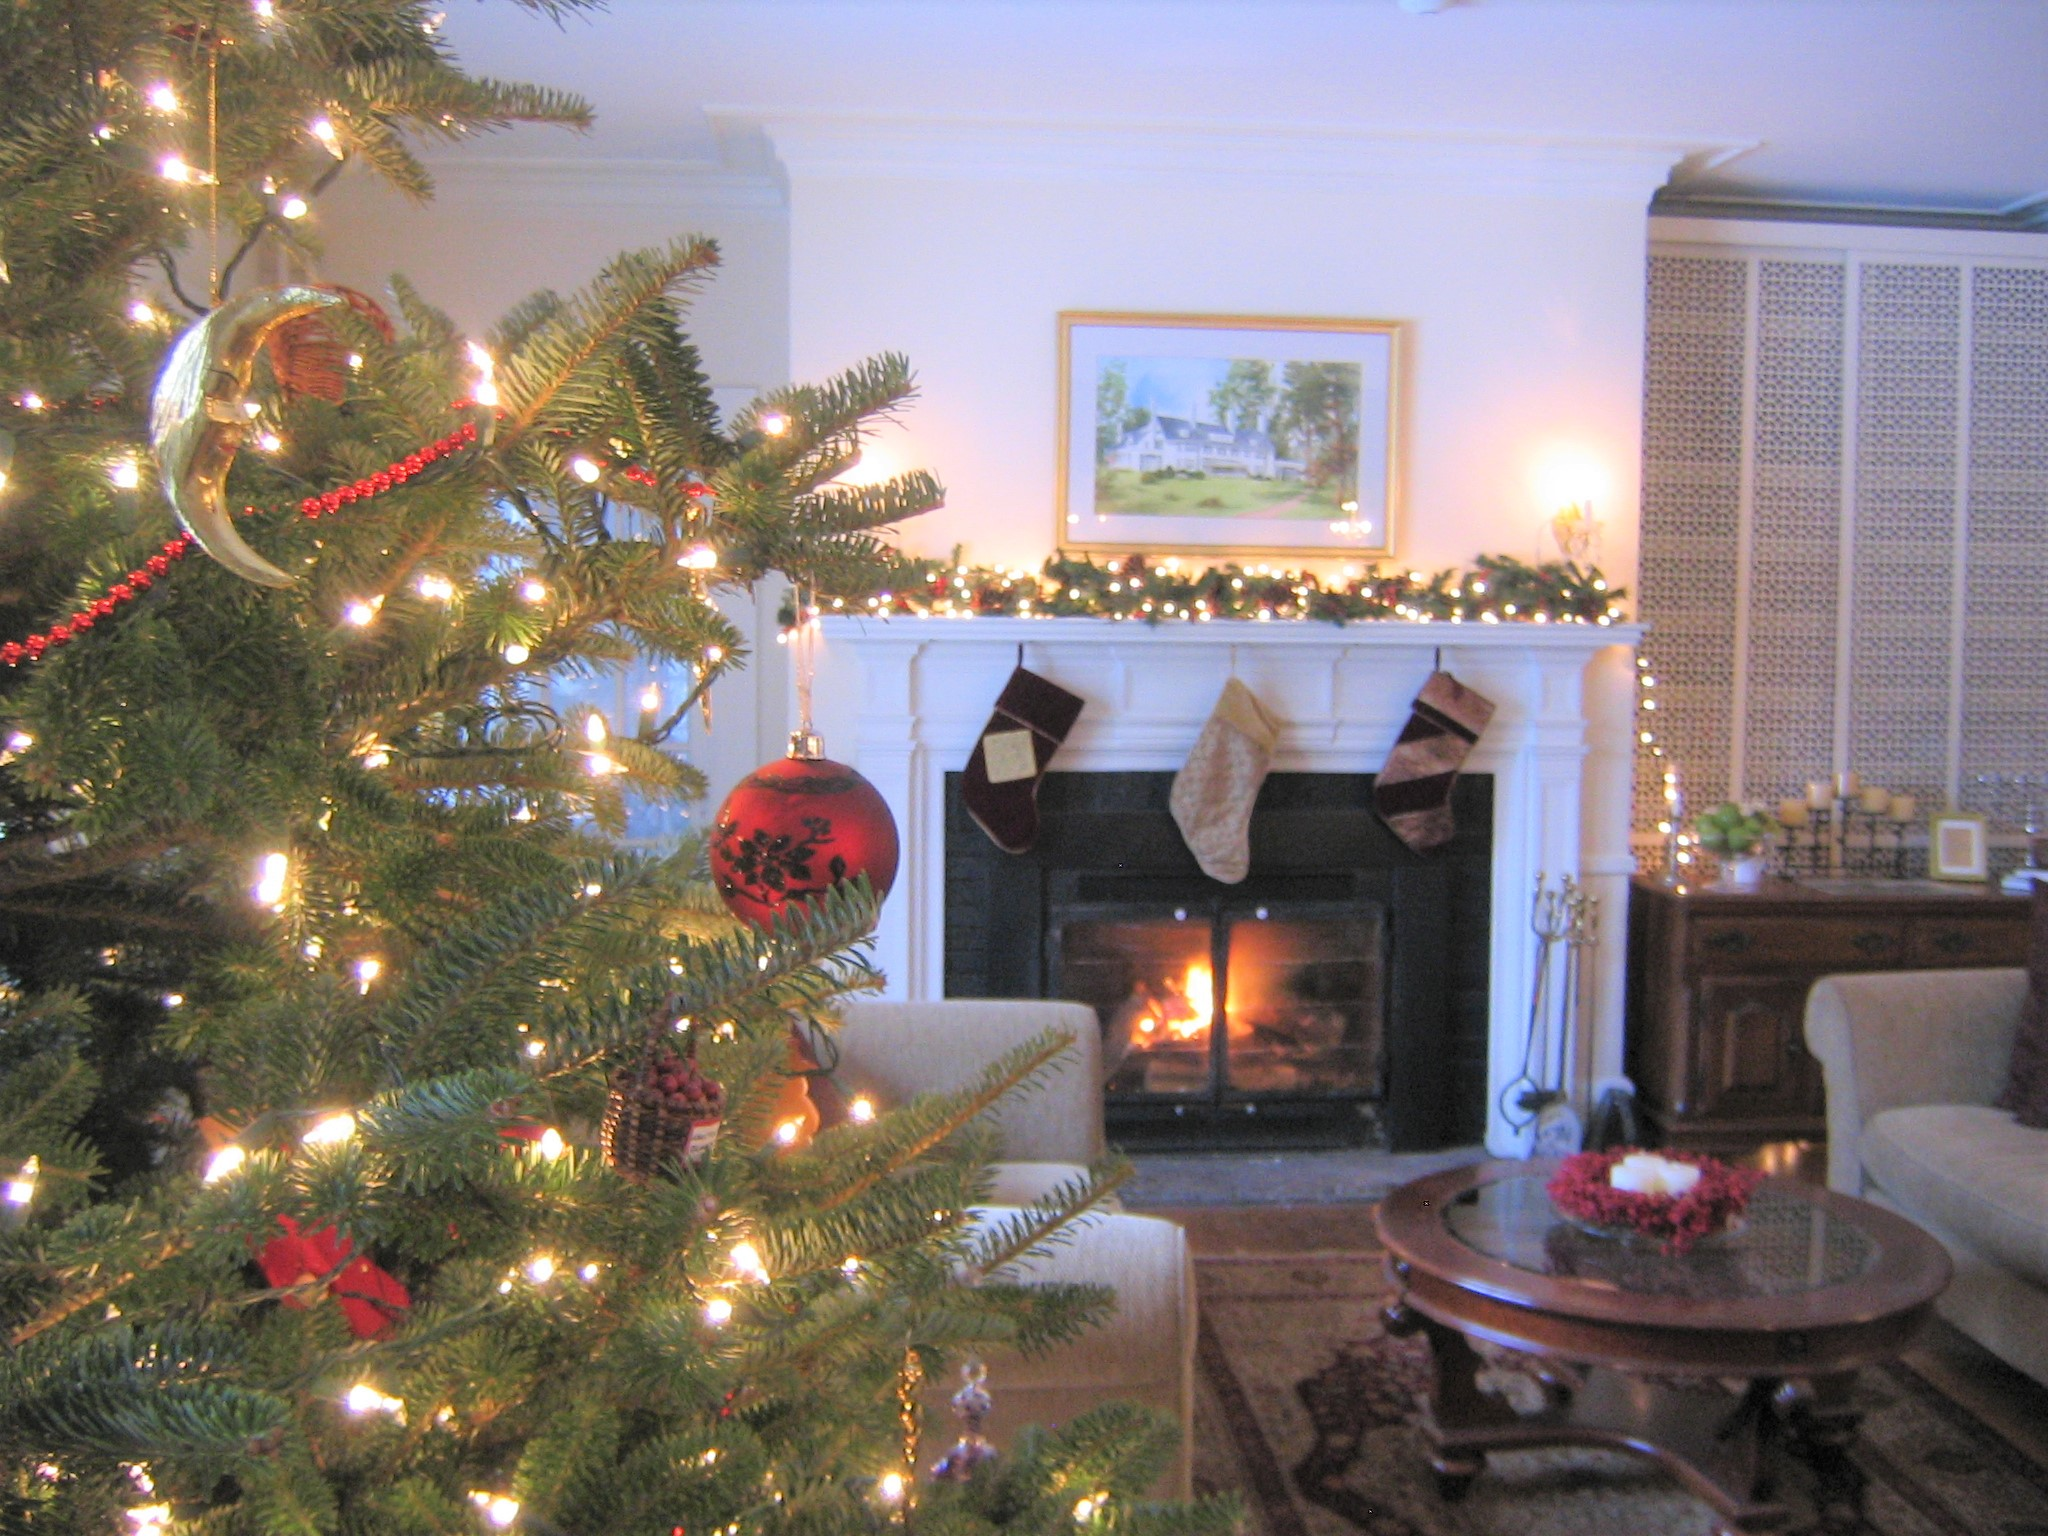 Vermont Holiday Events Celebrate The Season At The Four